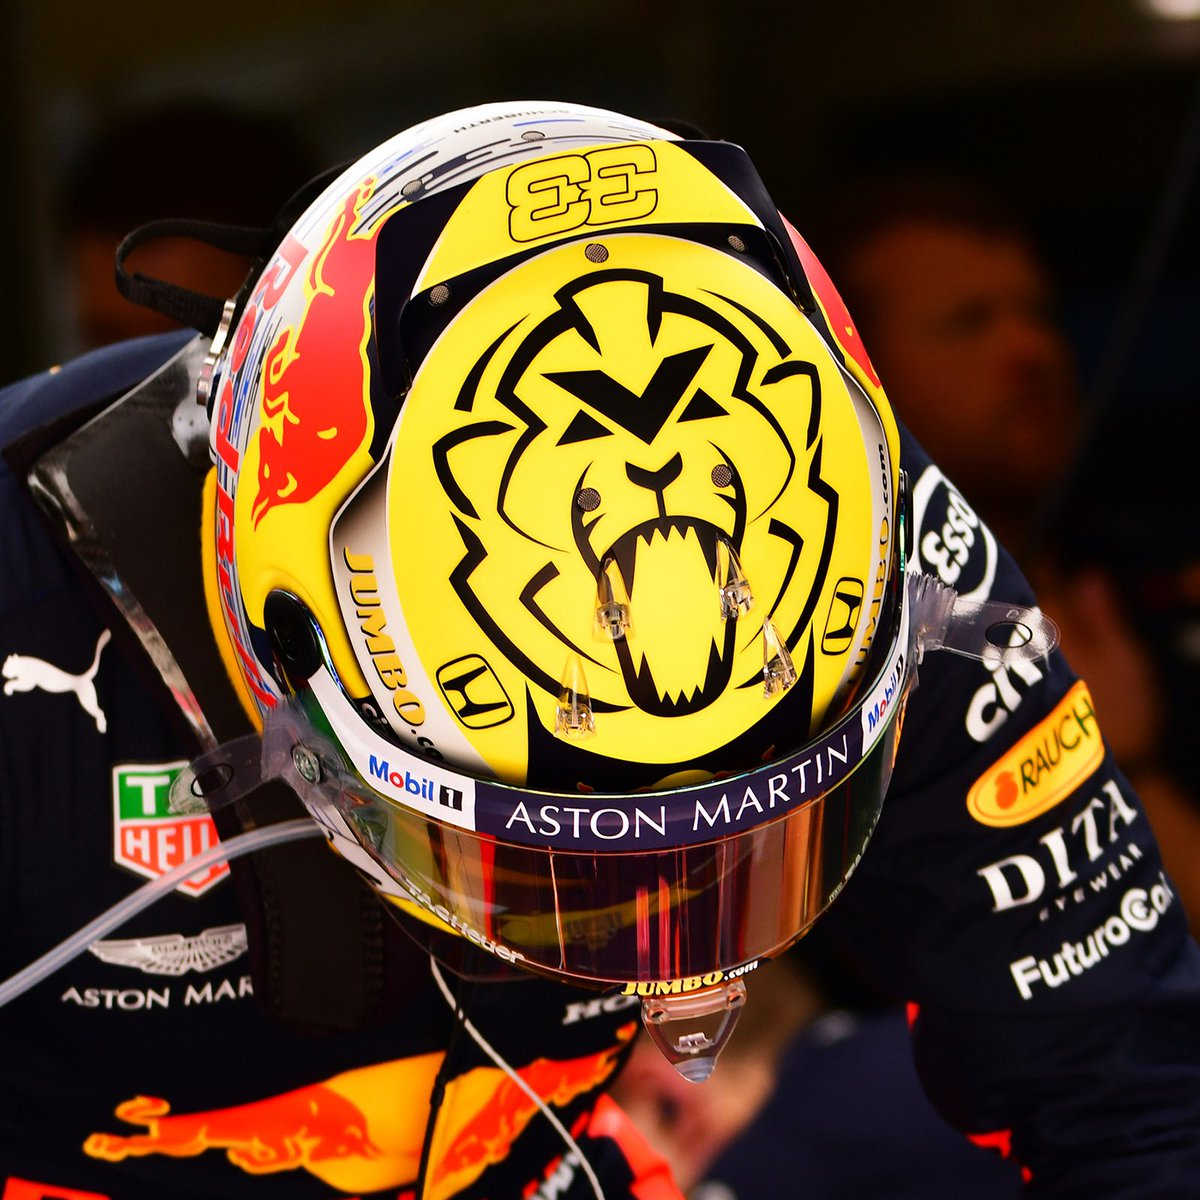 Fine-tuning our set up and then it's qualifying time! 🦁 #UnleashTheLion #KeepPushing #AustrianGP 🇦🇹